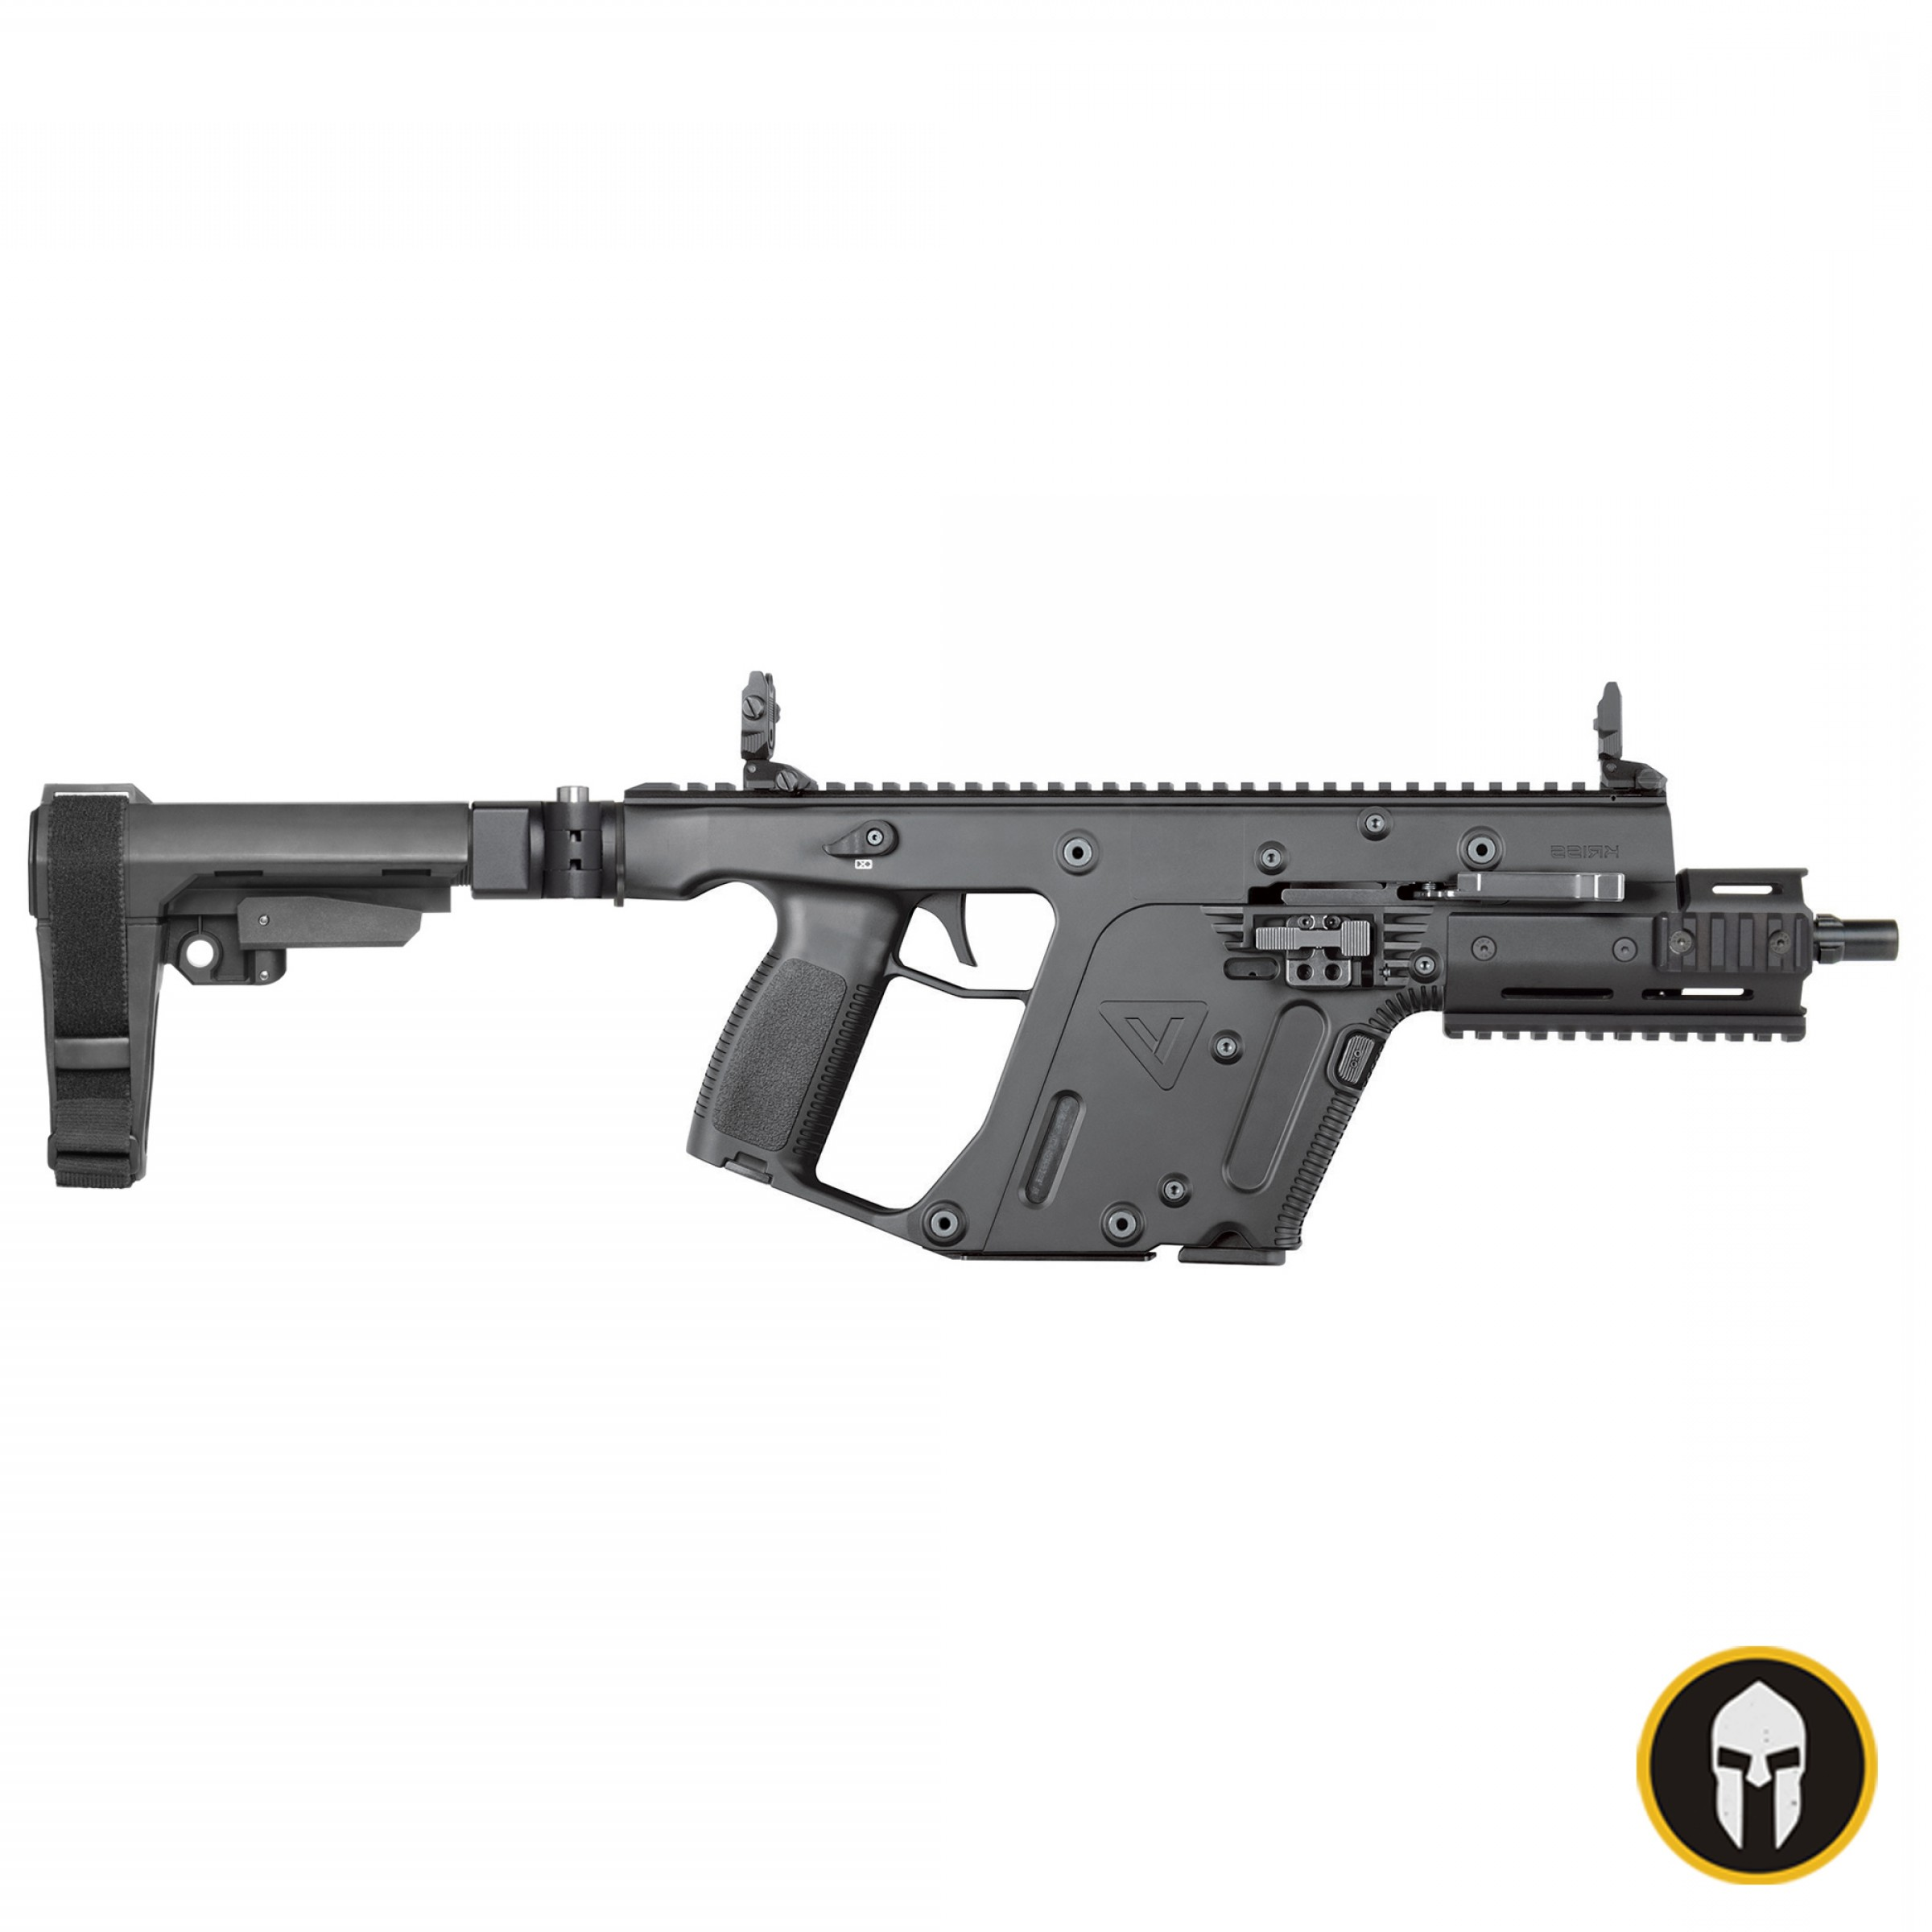 Tactical Vector: Kriss Vector Sdp Gen Ii Black Sb Tactical Sba Pistol Brace